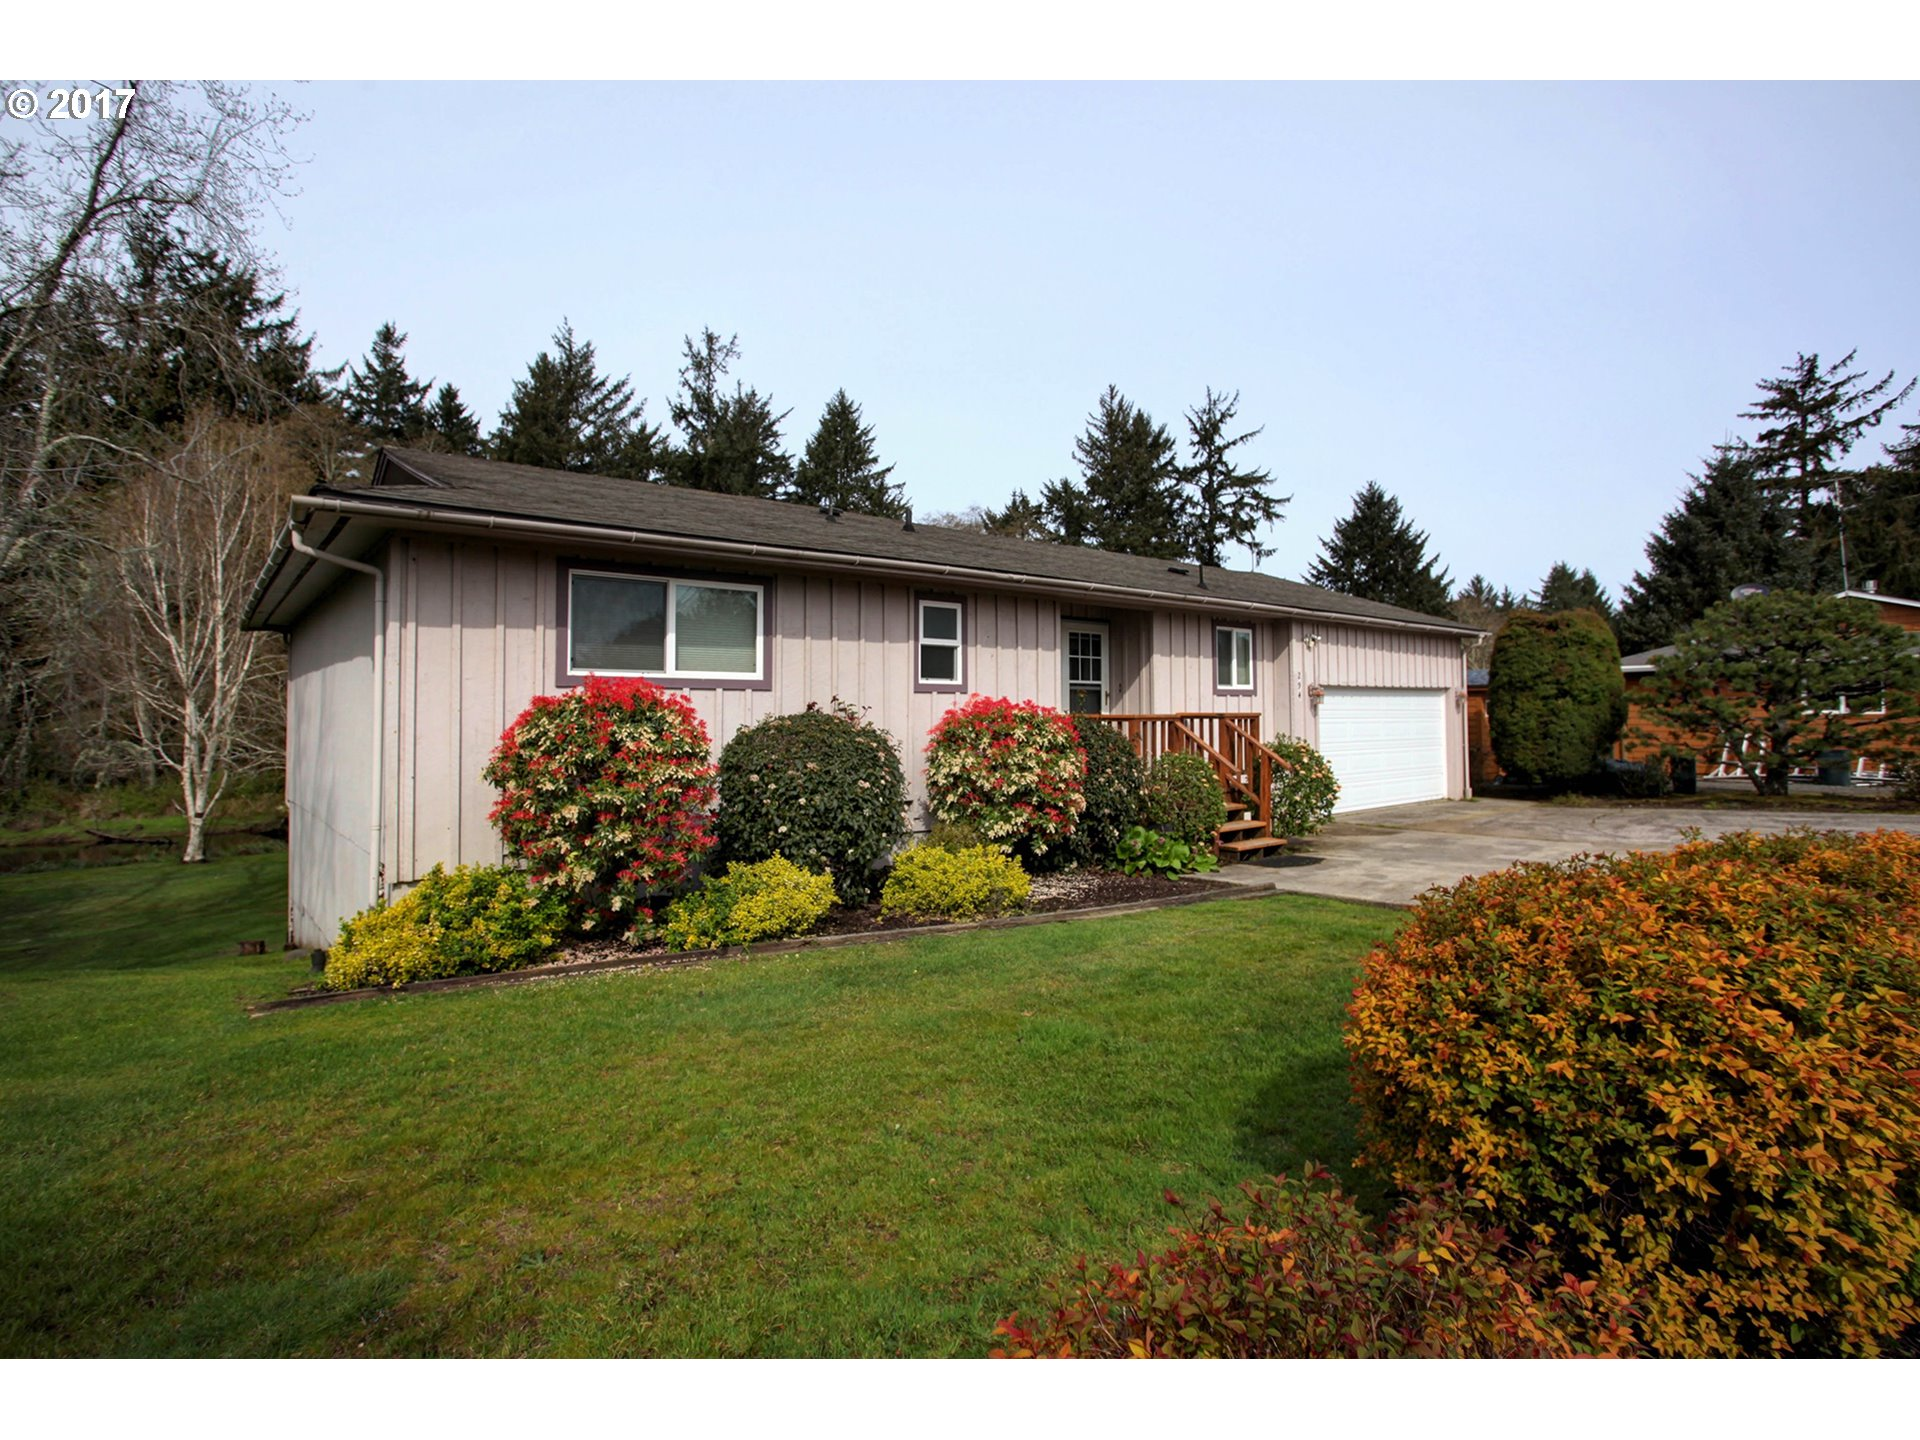 294 Woodland AVE Gearhart, OR 97138 - MLS #: 17692585